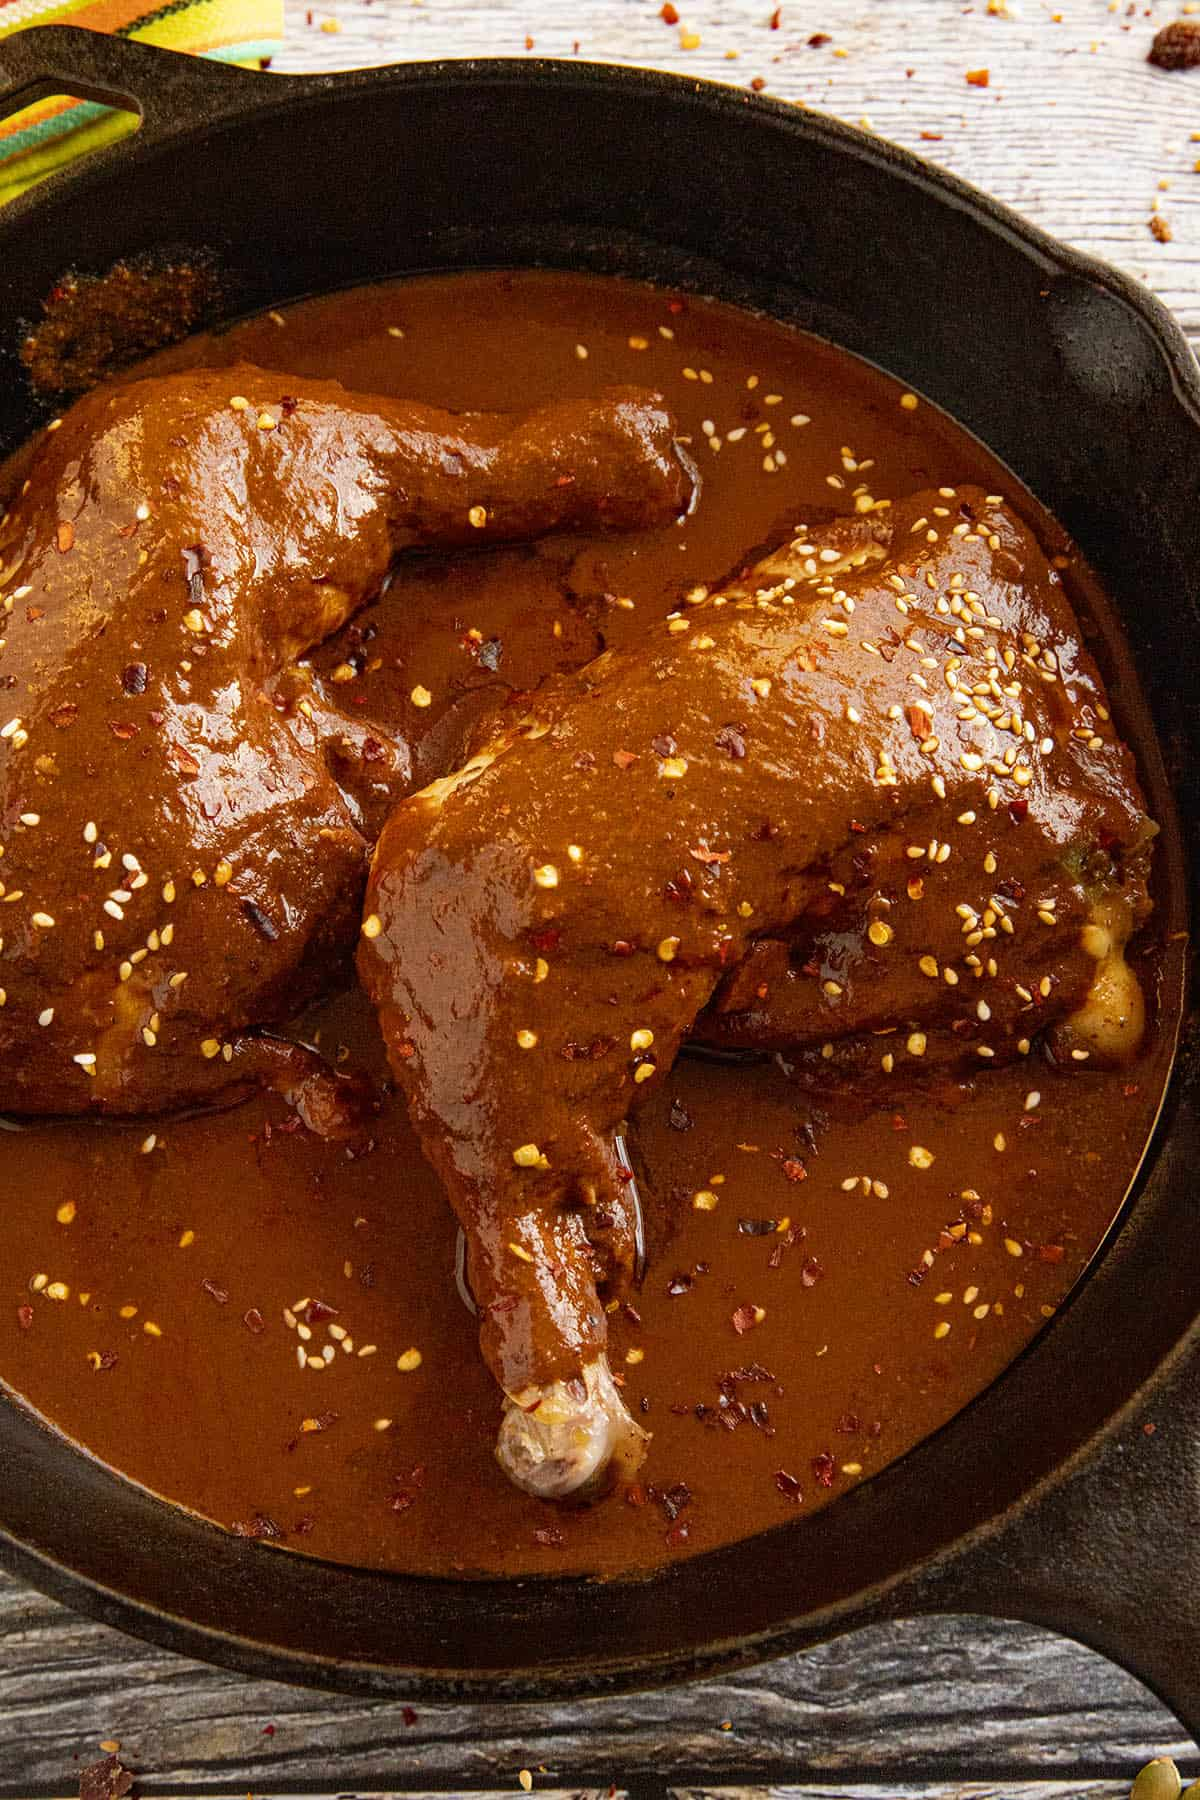 Chicken Mole in a hot pan, ready to serve